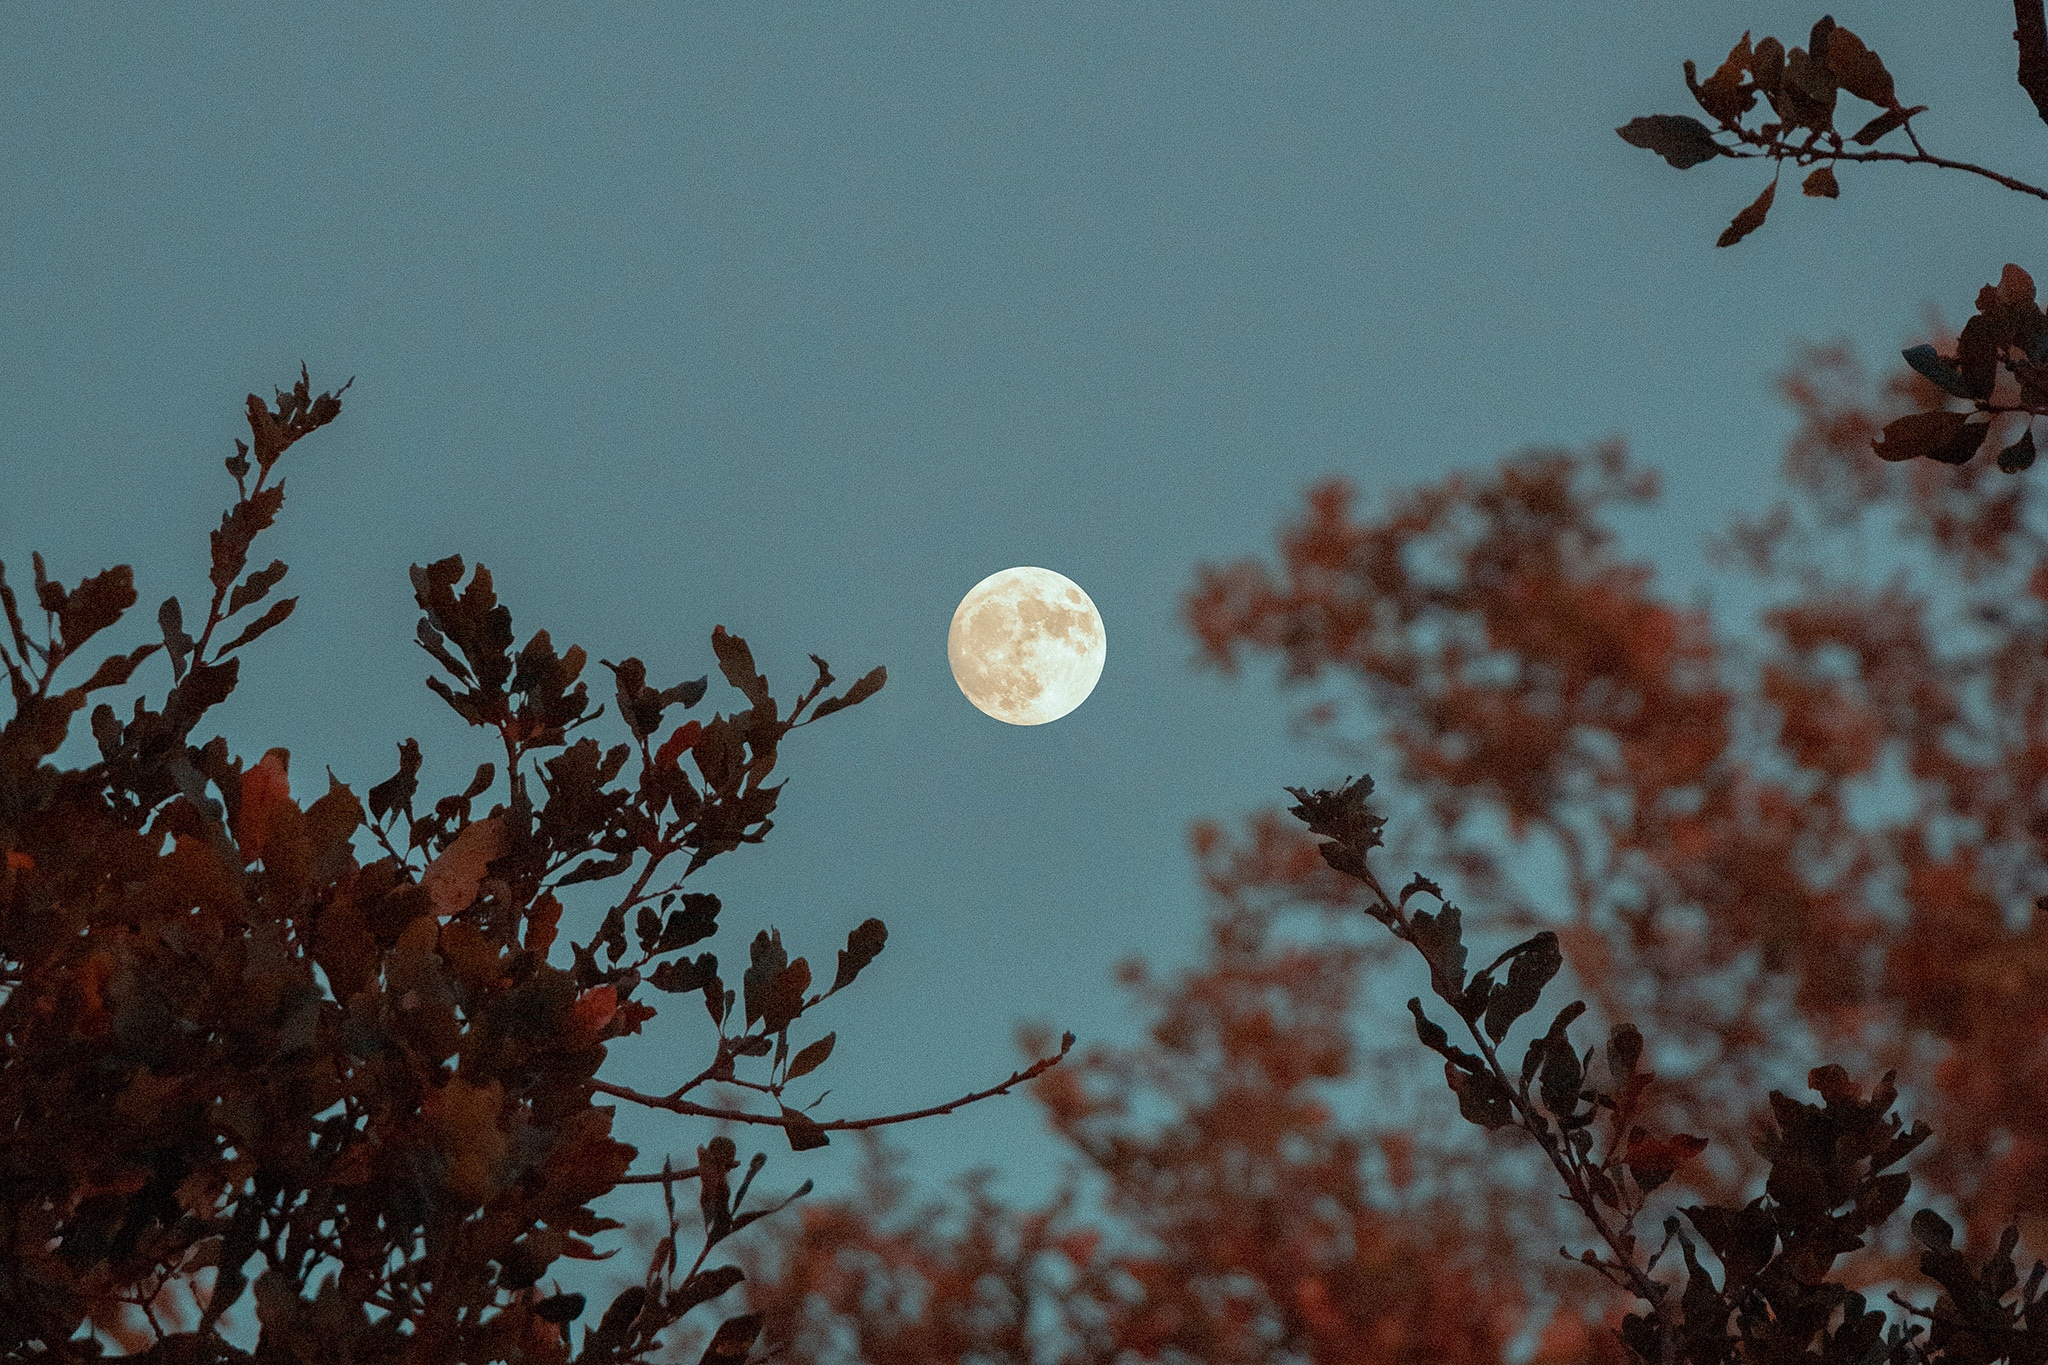 Pale full moon appears beyond dark red branches on an eerie blue sky